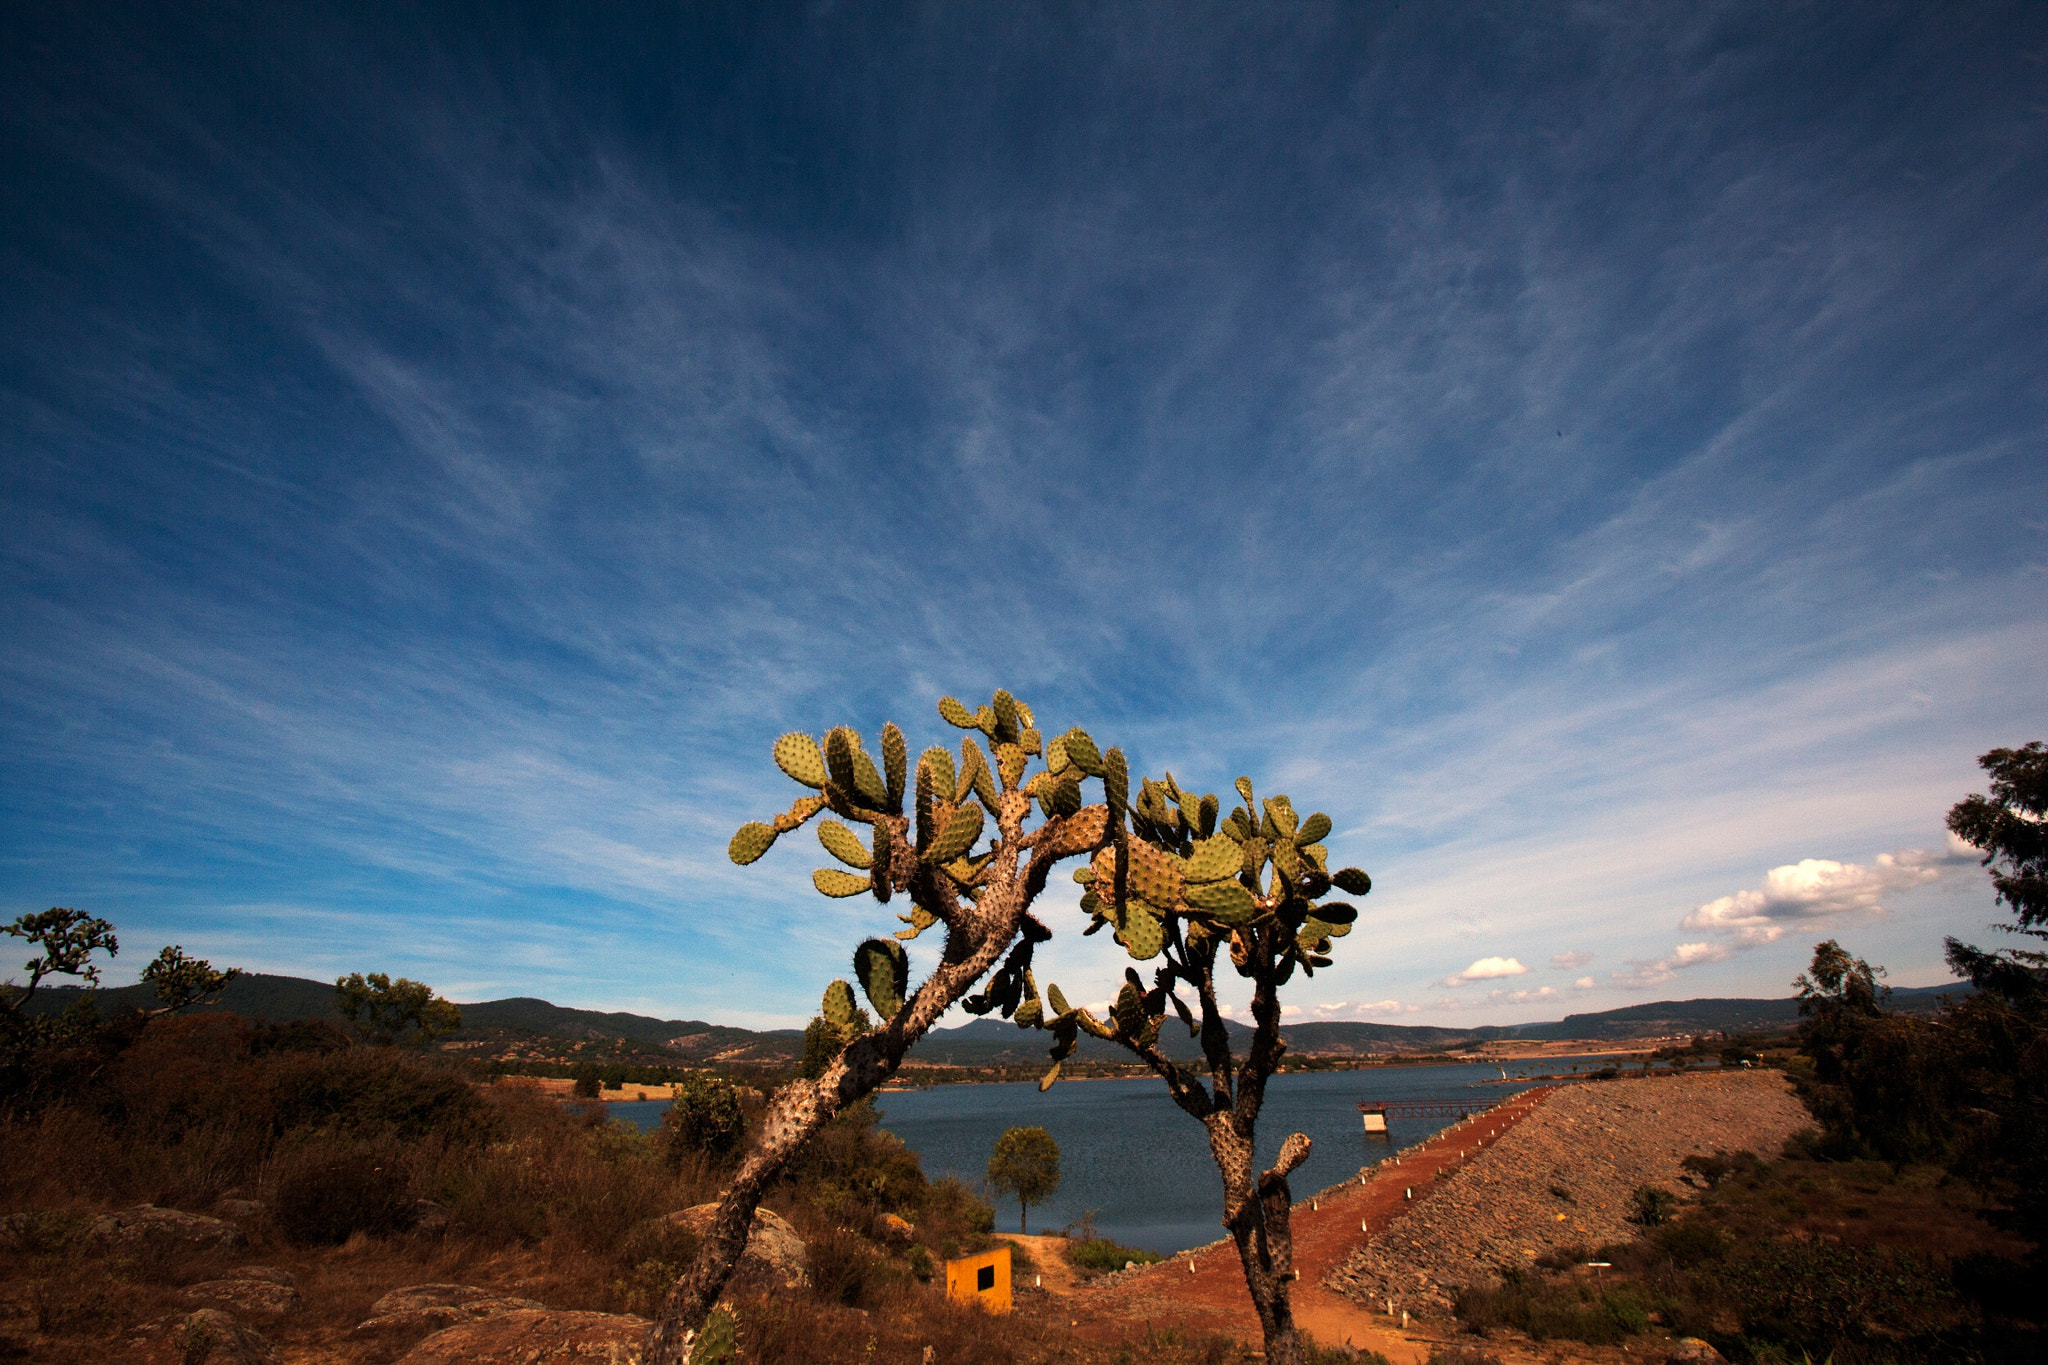 Photograph Cactus at Tapalpa by Cristobal Garciaferro Rubio on 500px